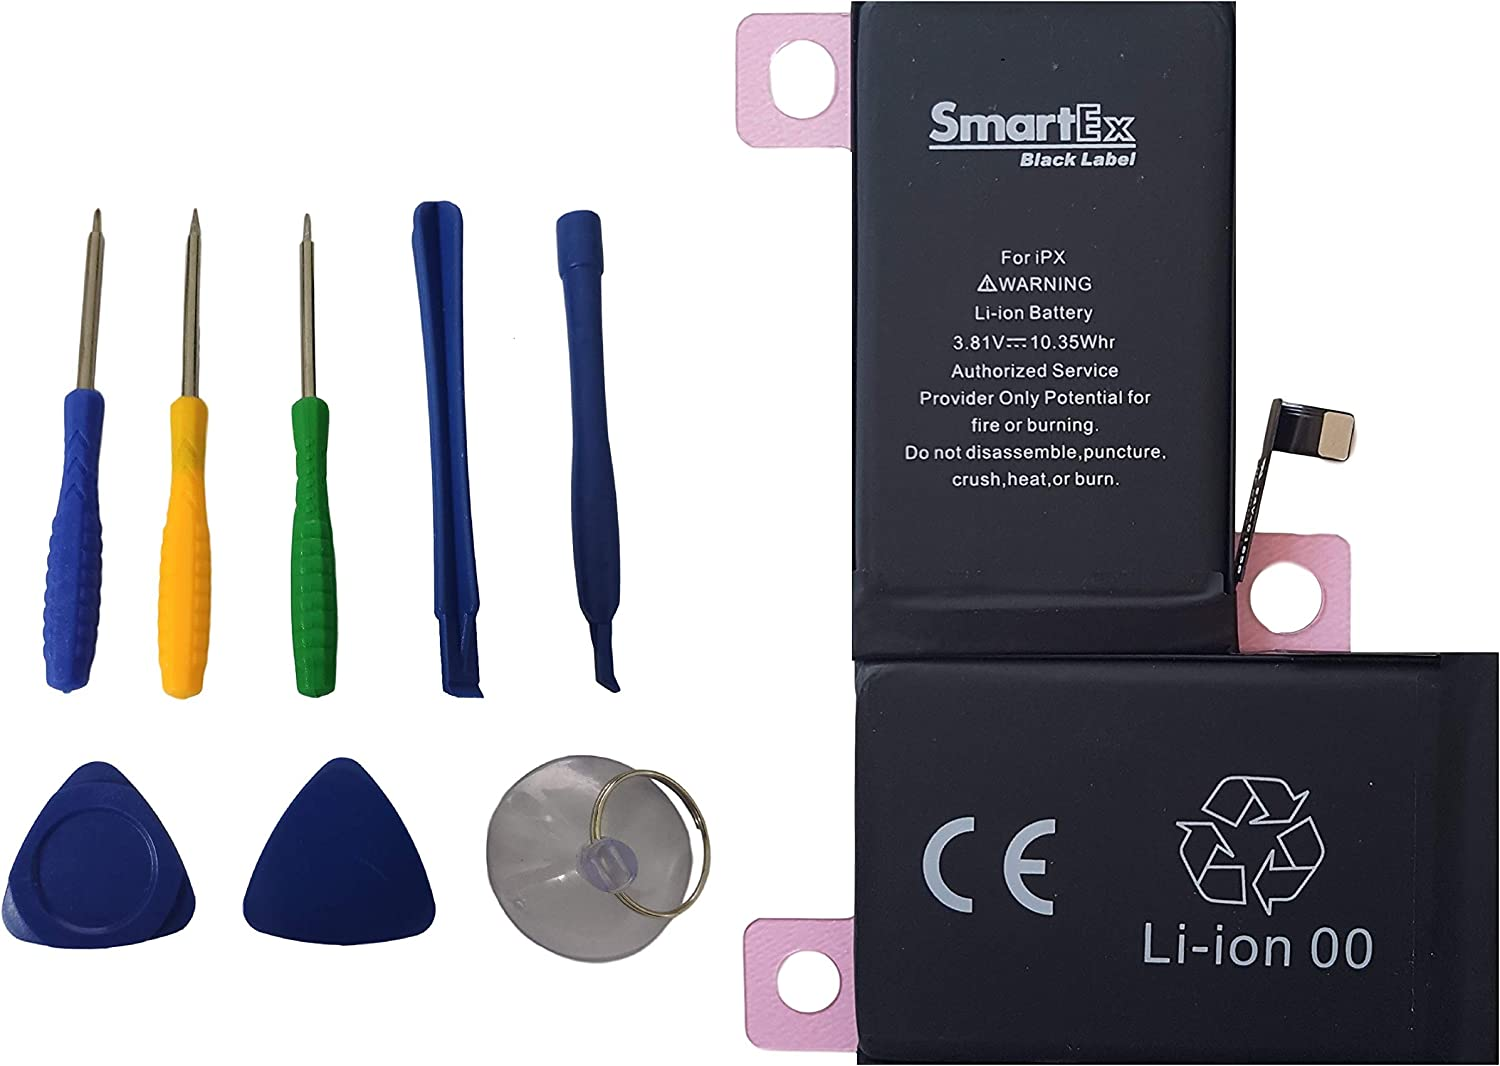 Smartex® Black Label Baterìa Compatible con iPhone X  + Kit de Herramientas - 2716 mAh / 2019 Año de producción